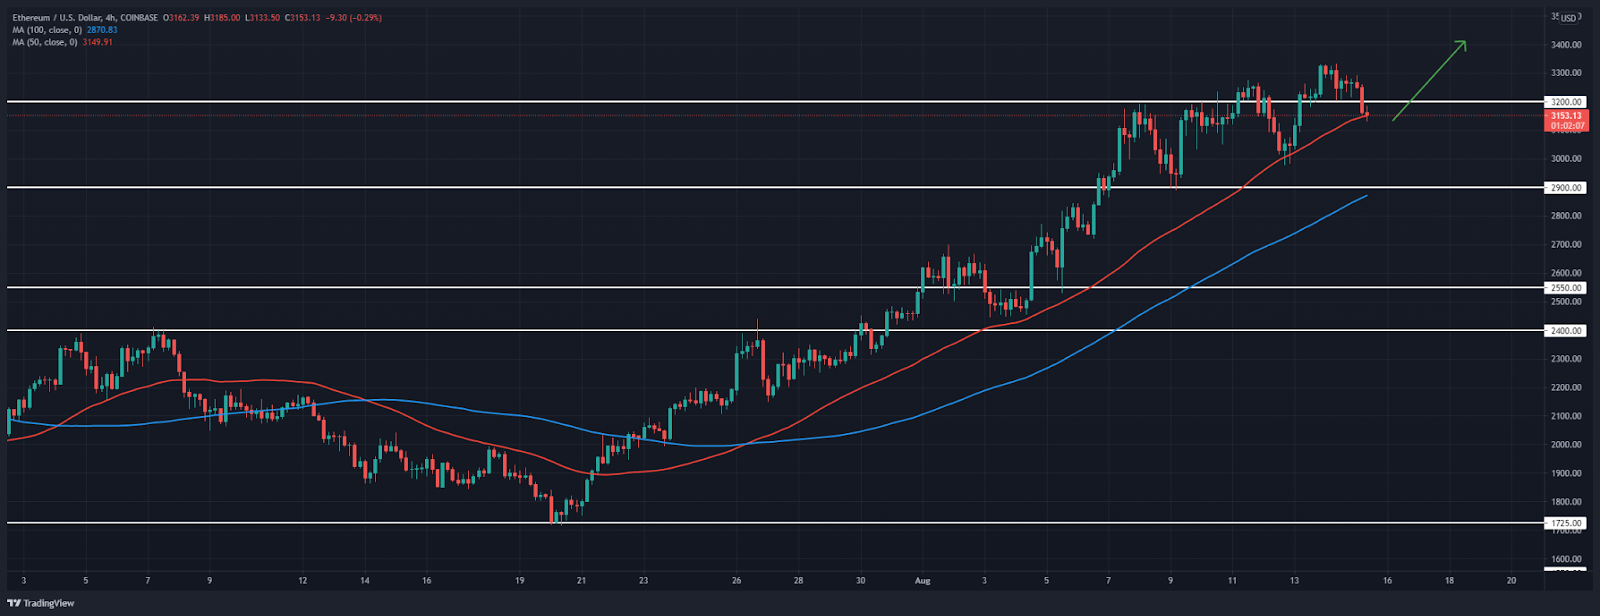 Ethereum Price Analysis: ETH prepares to move higher after a retracement overnight?